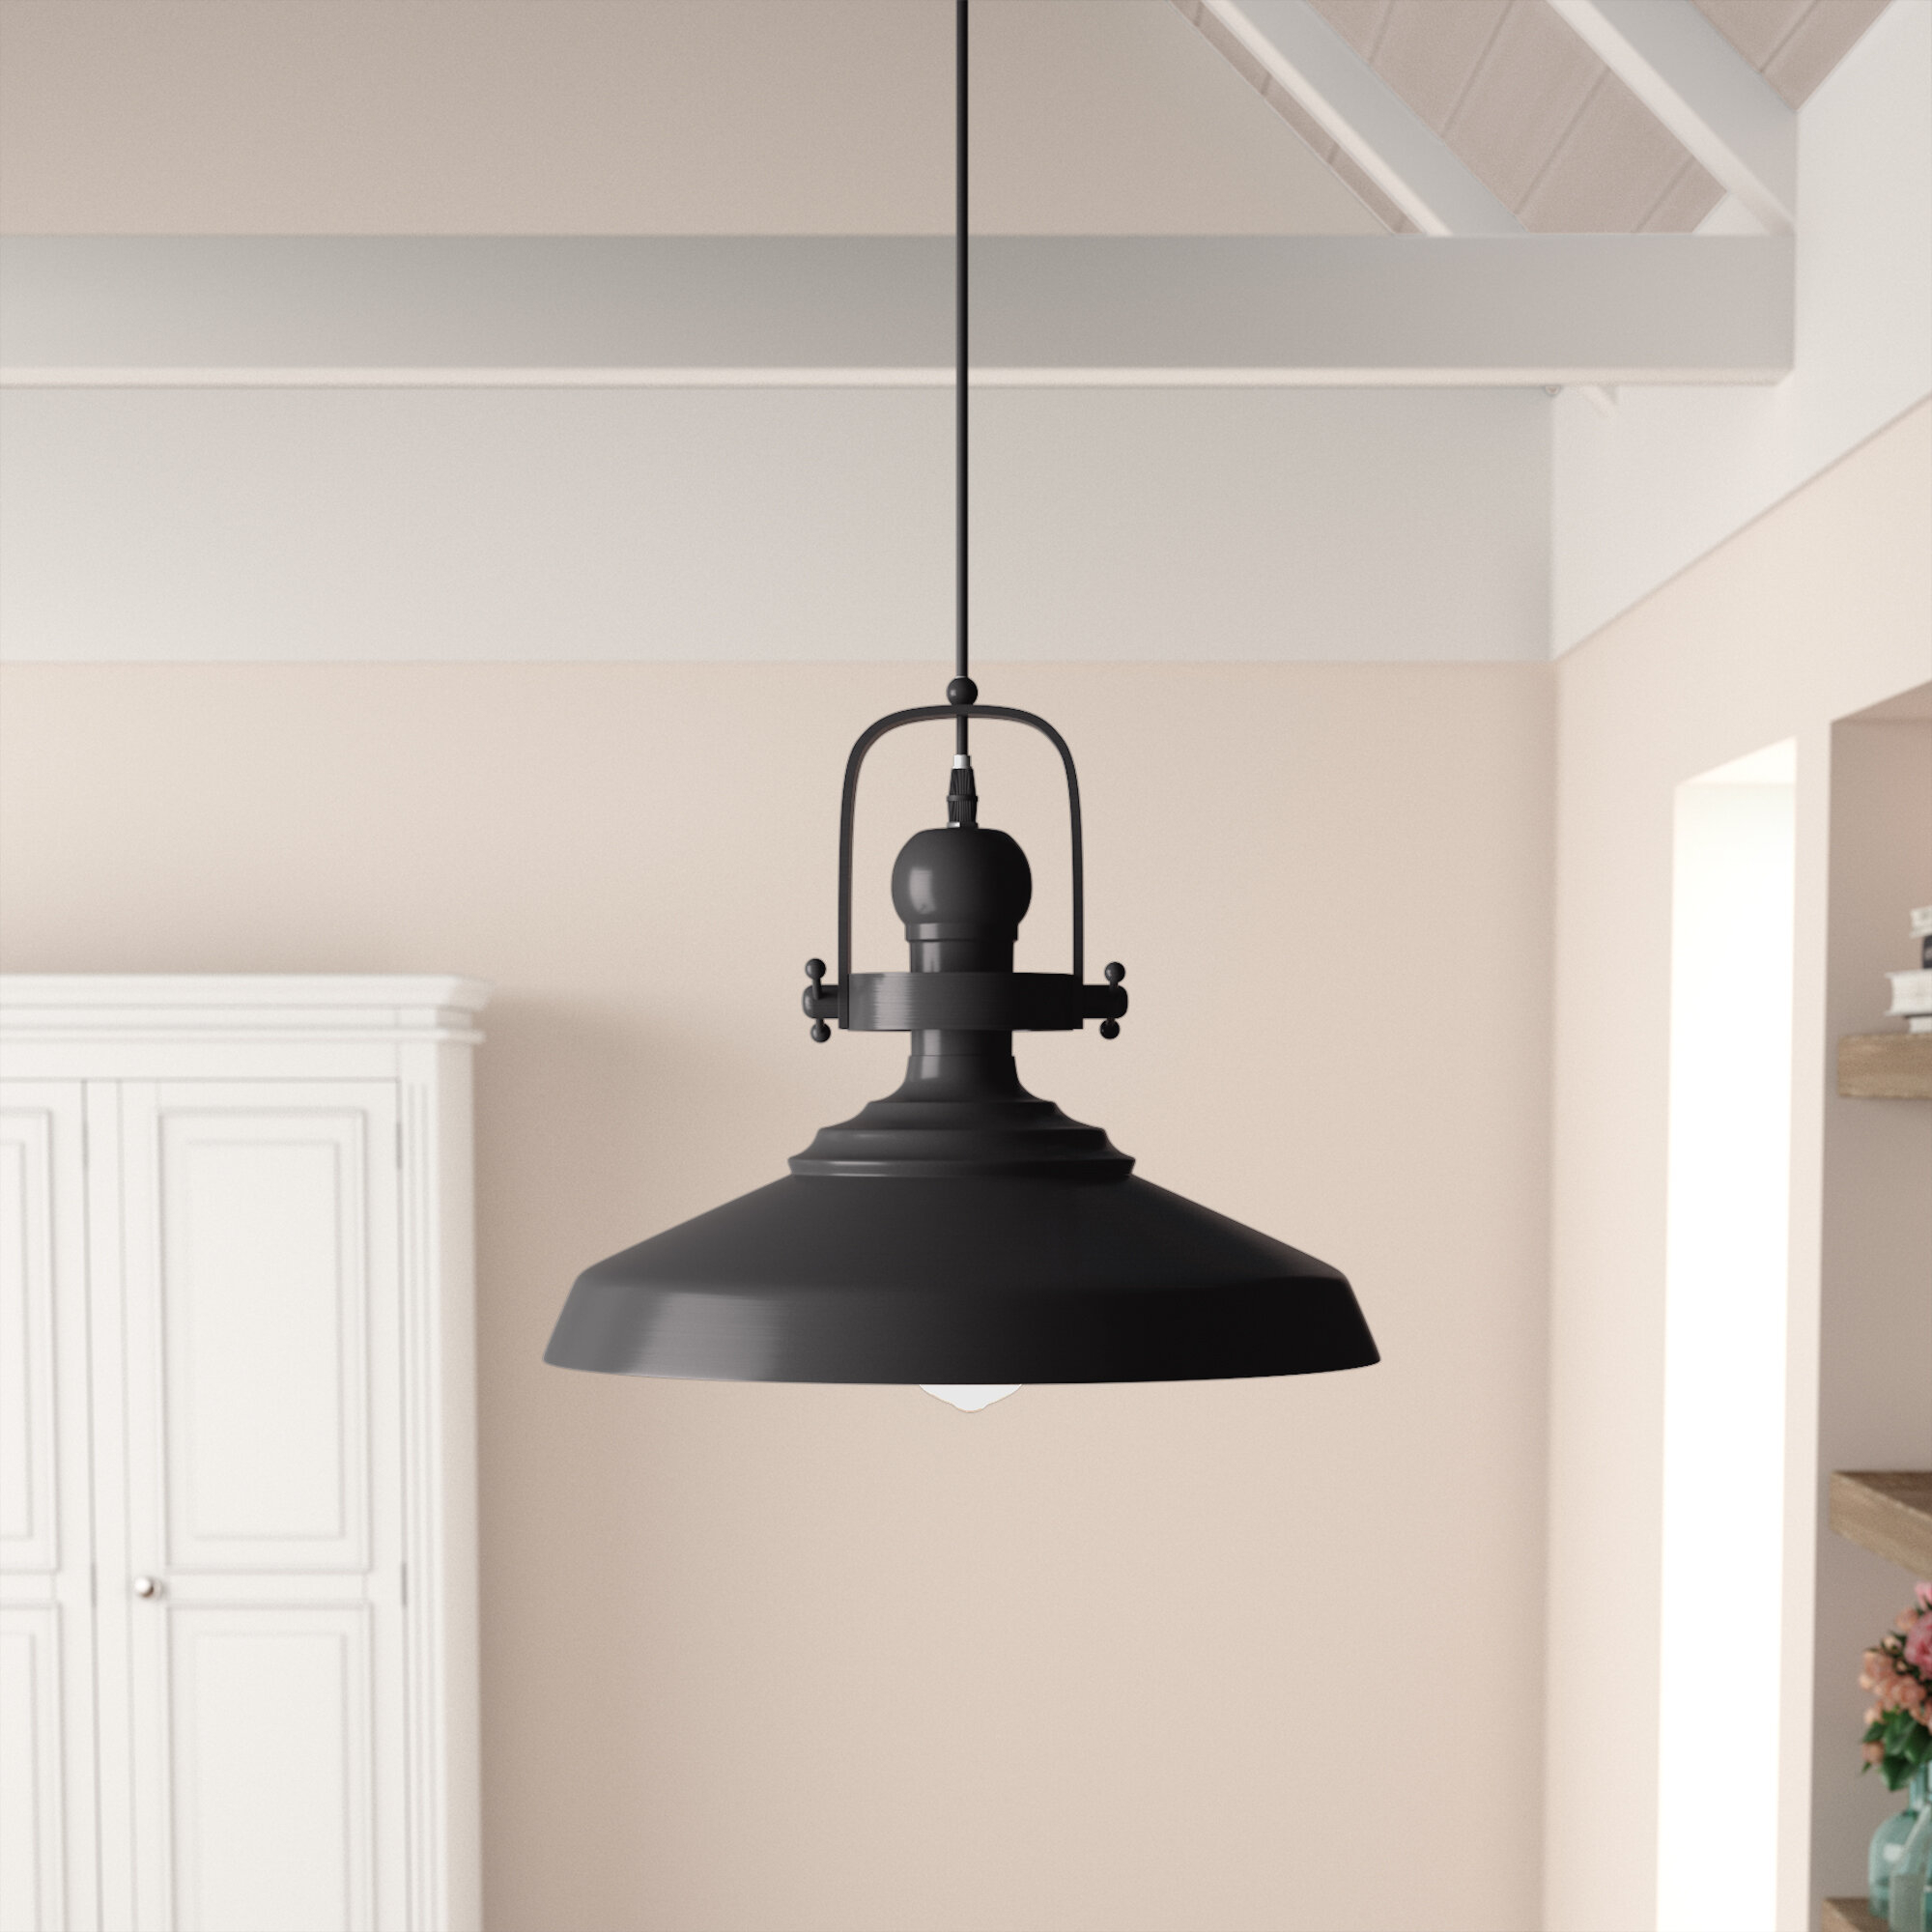 Estelle 1-Light Single Dome Pendant within 1-Light Single Dome Pendants (Image 10 of 30)